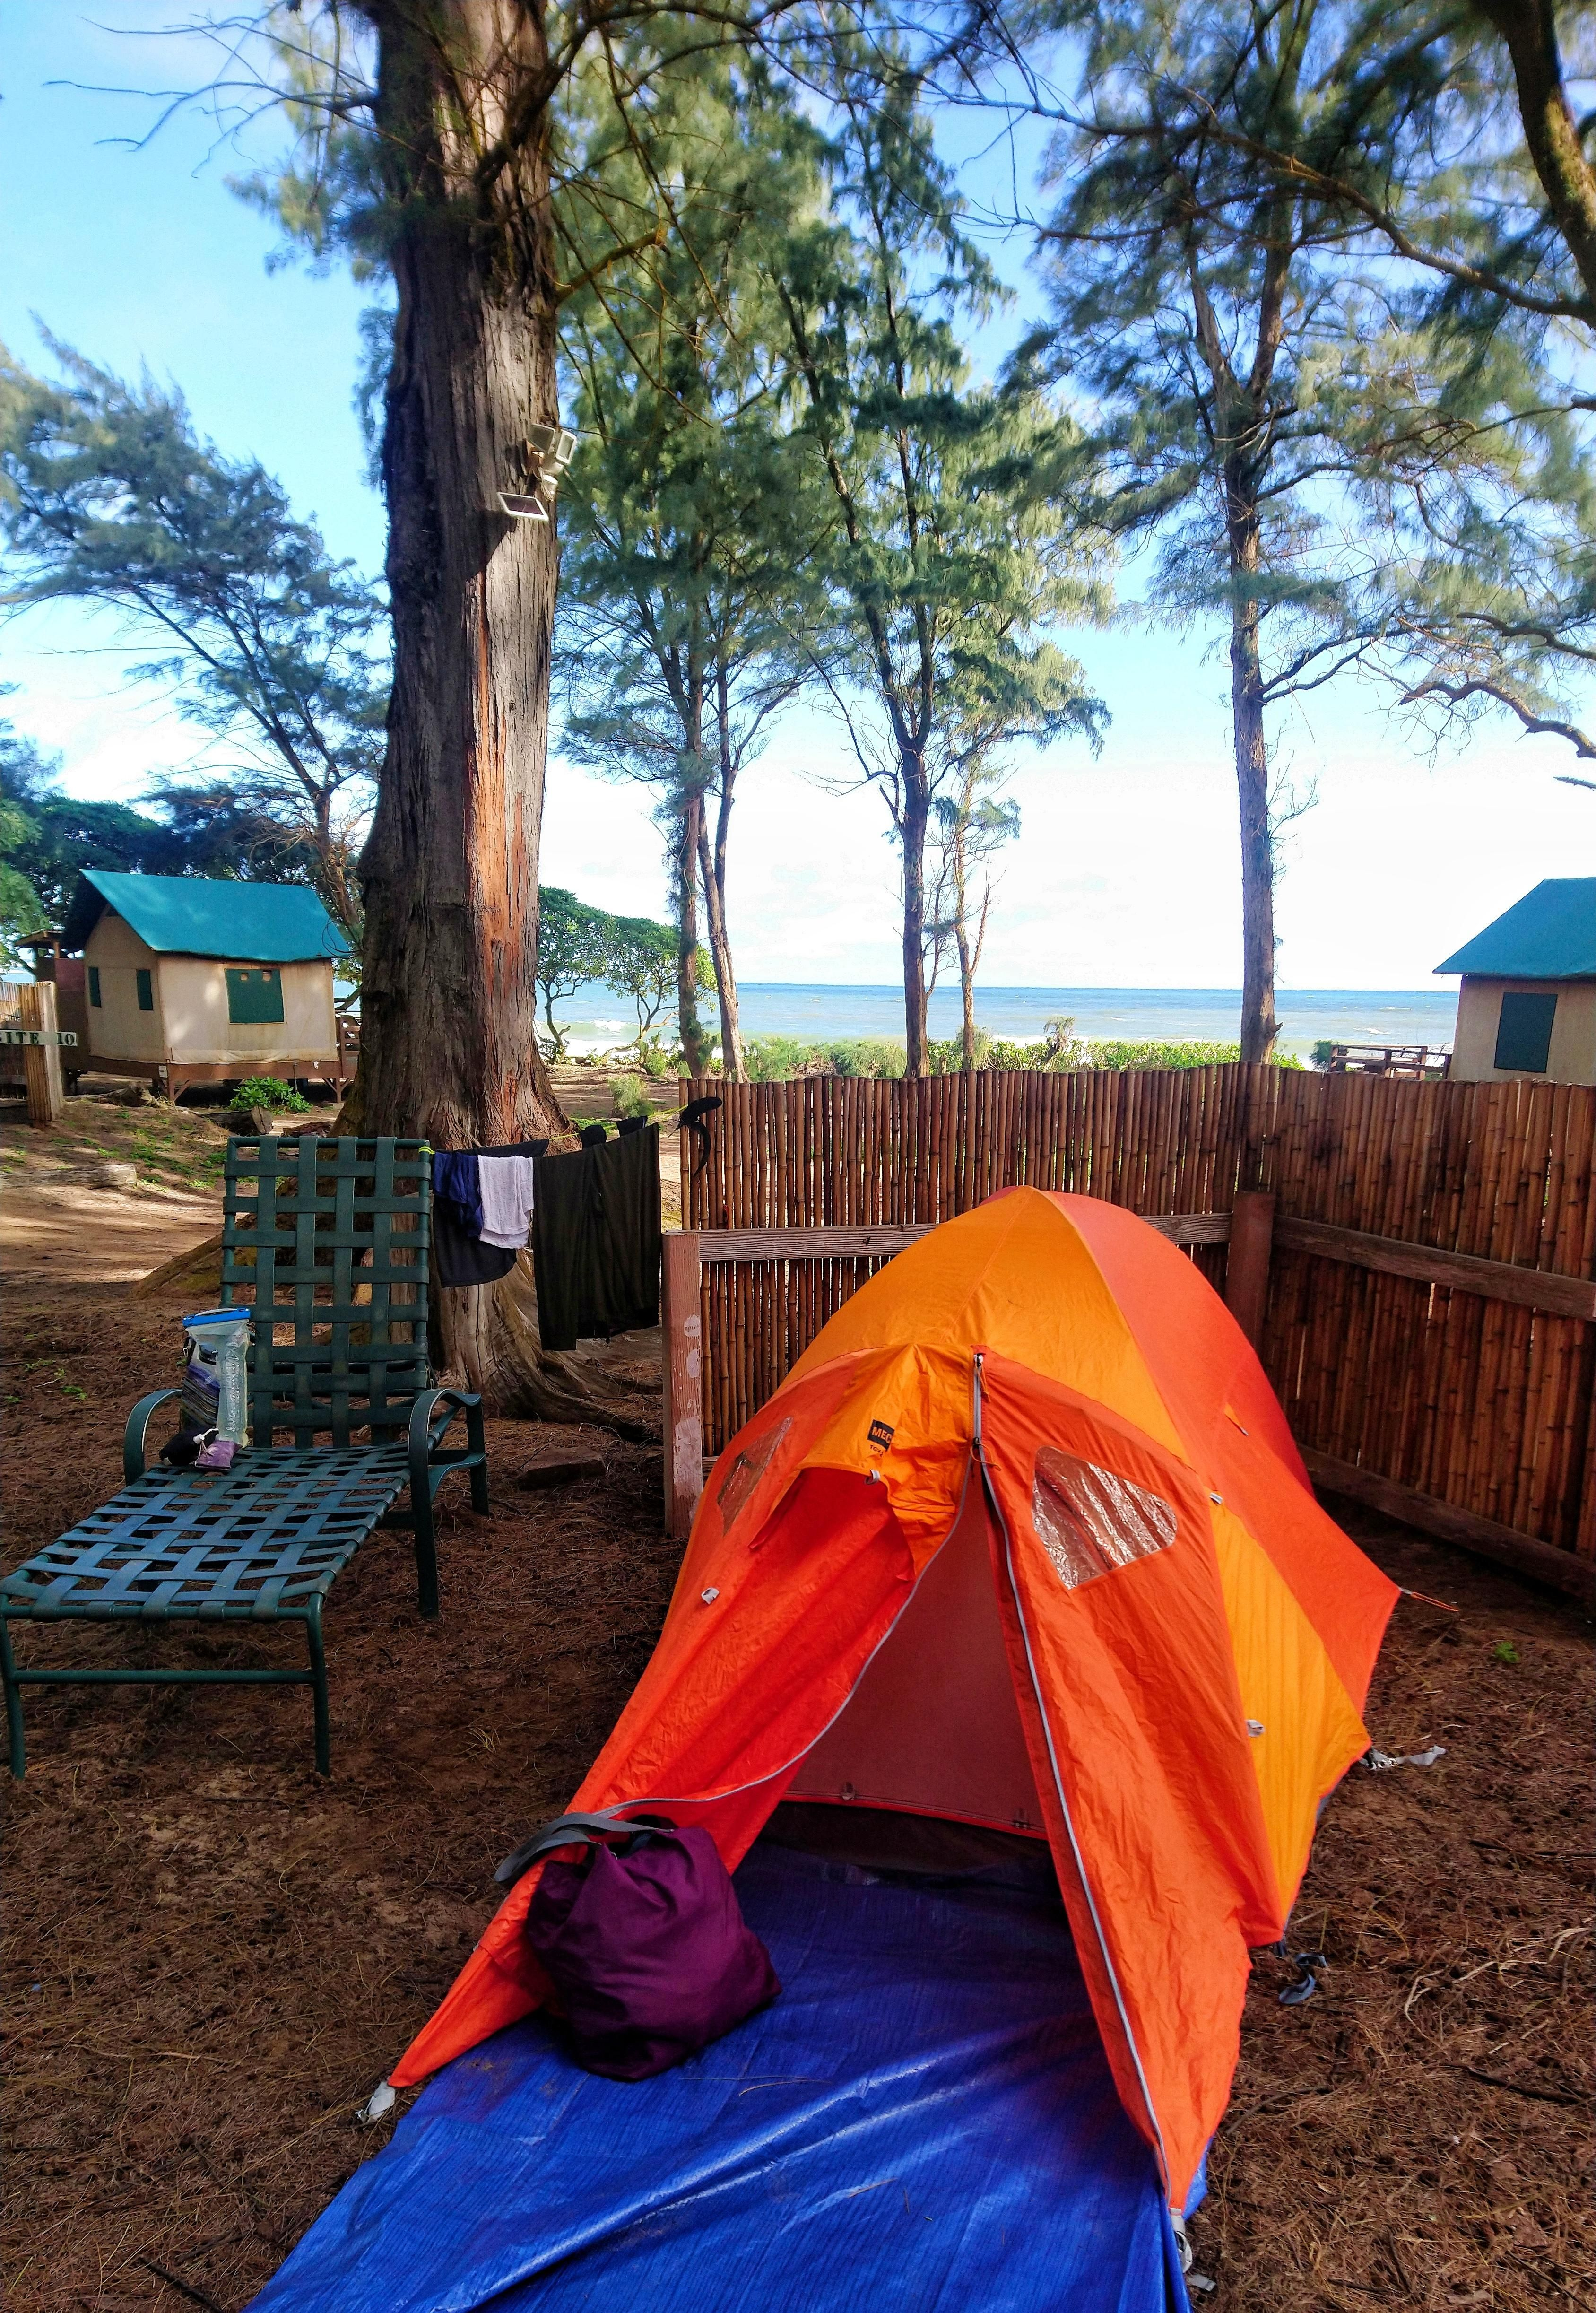 Pin by Dan Adventurer on Camping | Best camping gear